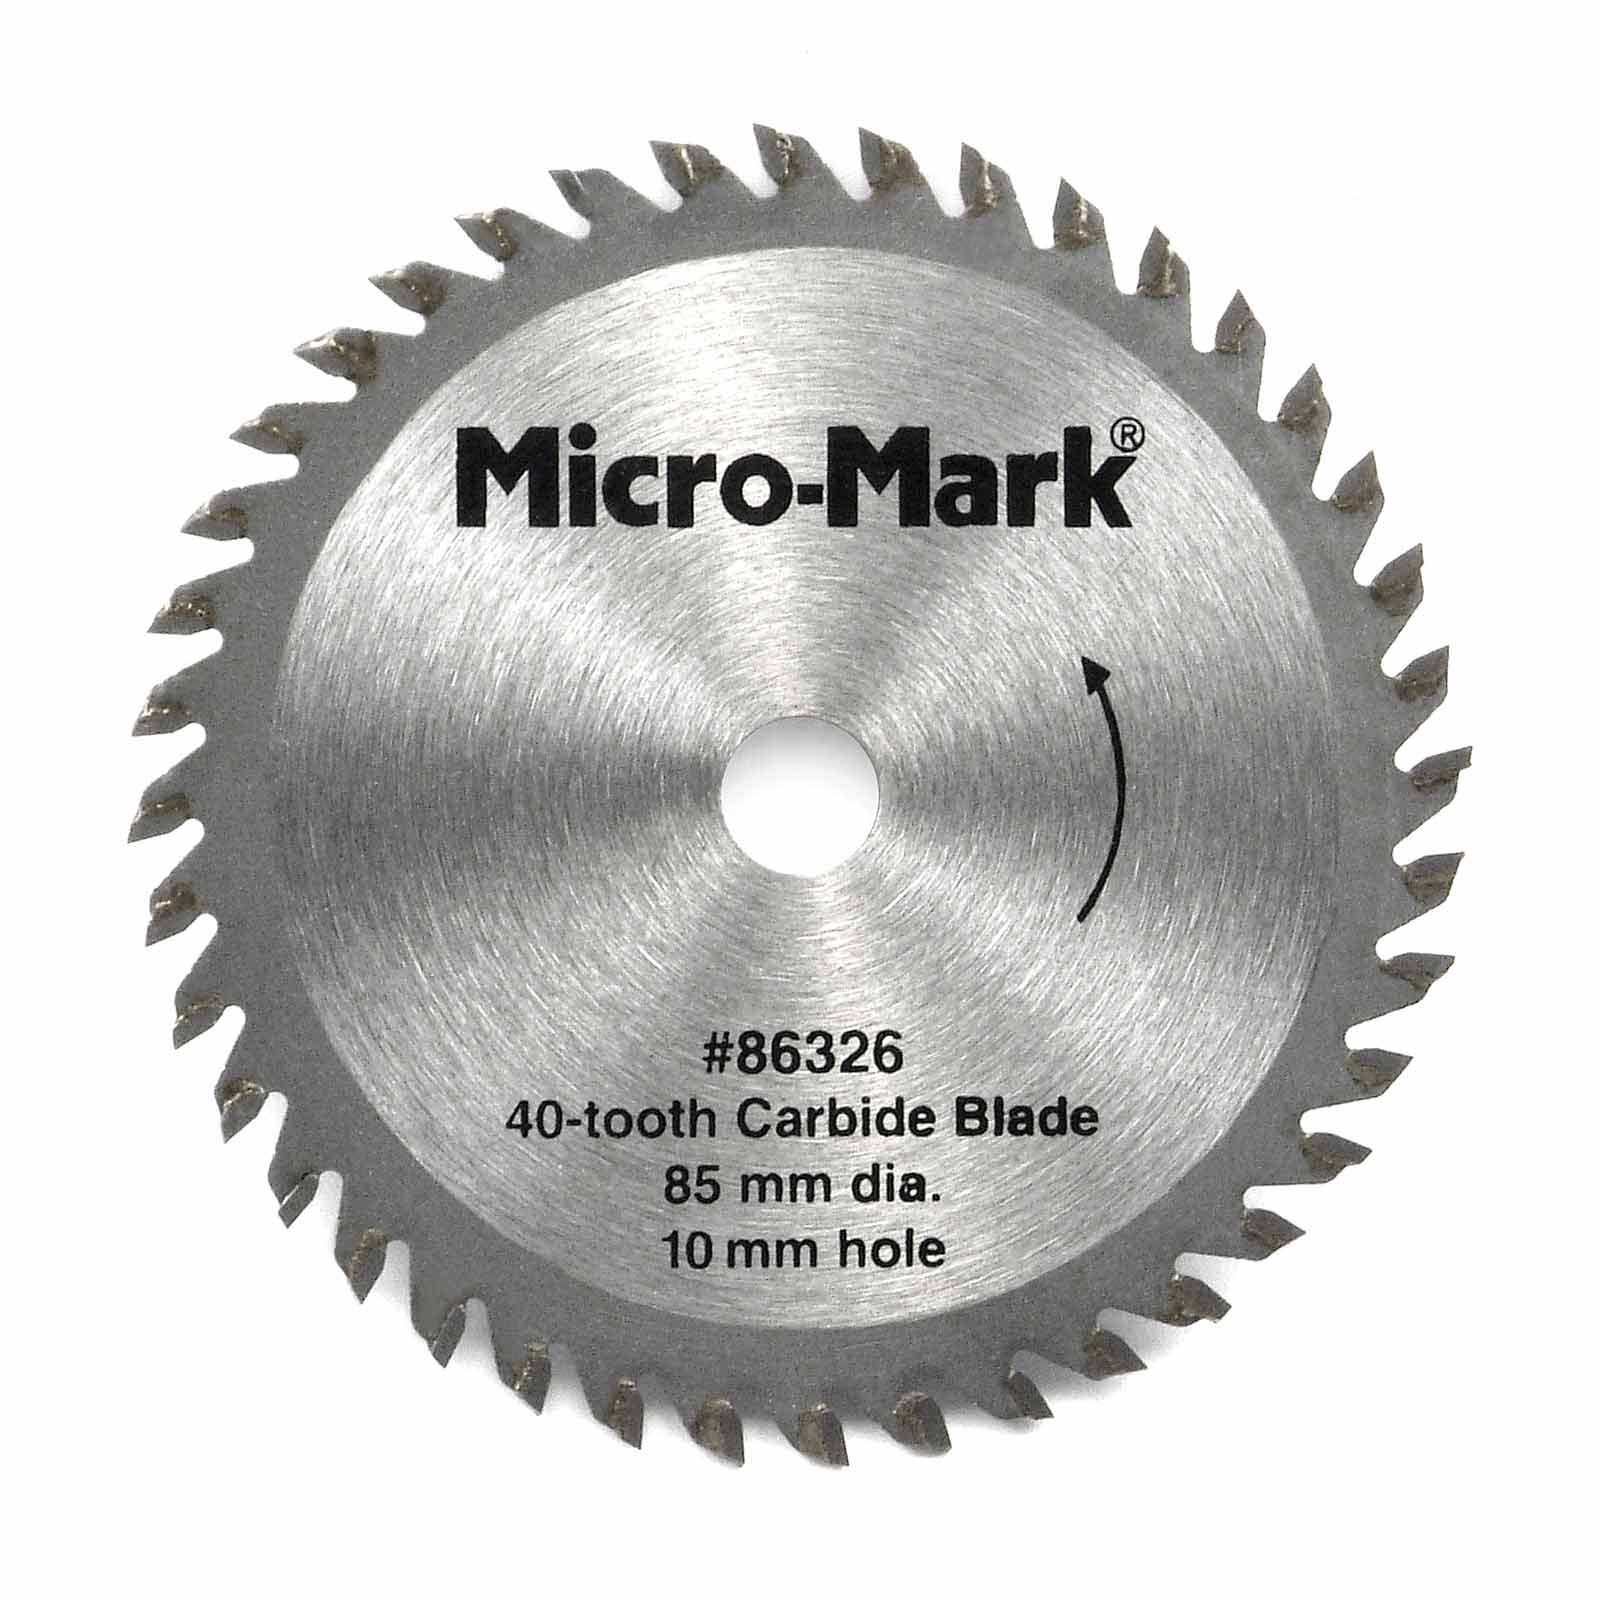 40 Tooth Carbide Tip Saw Blade 3 1 4 Inch Dia 10 Mm Hole Blade Power Tool Accessories Teeth